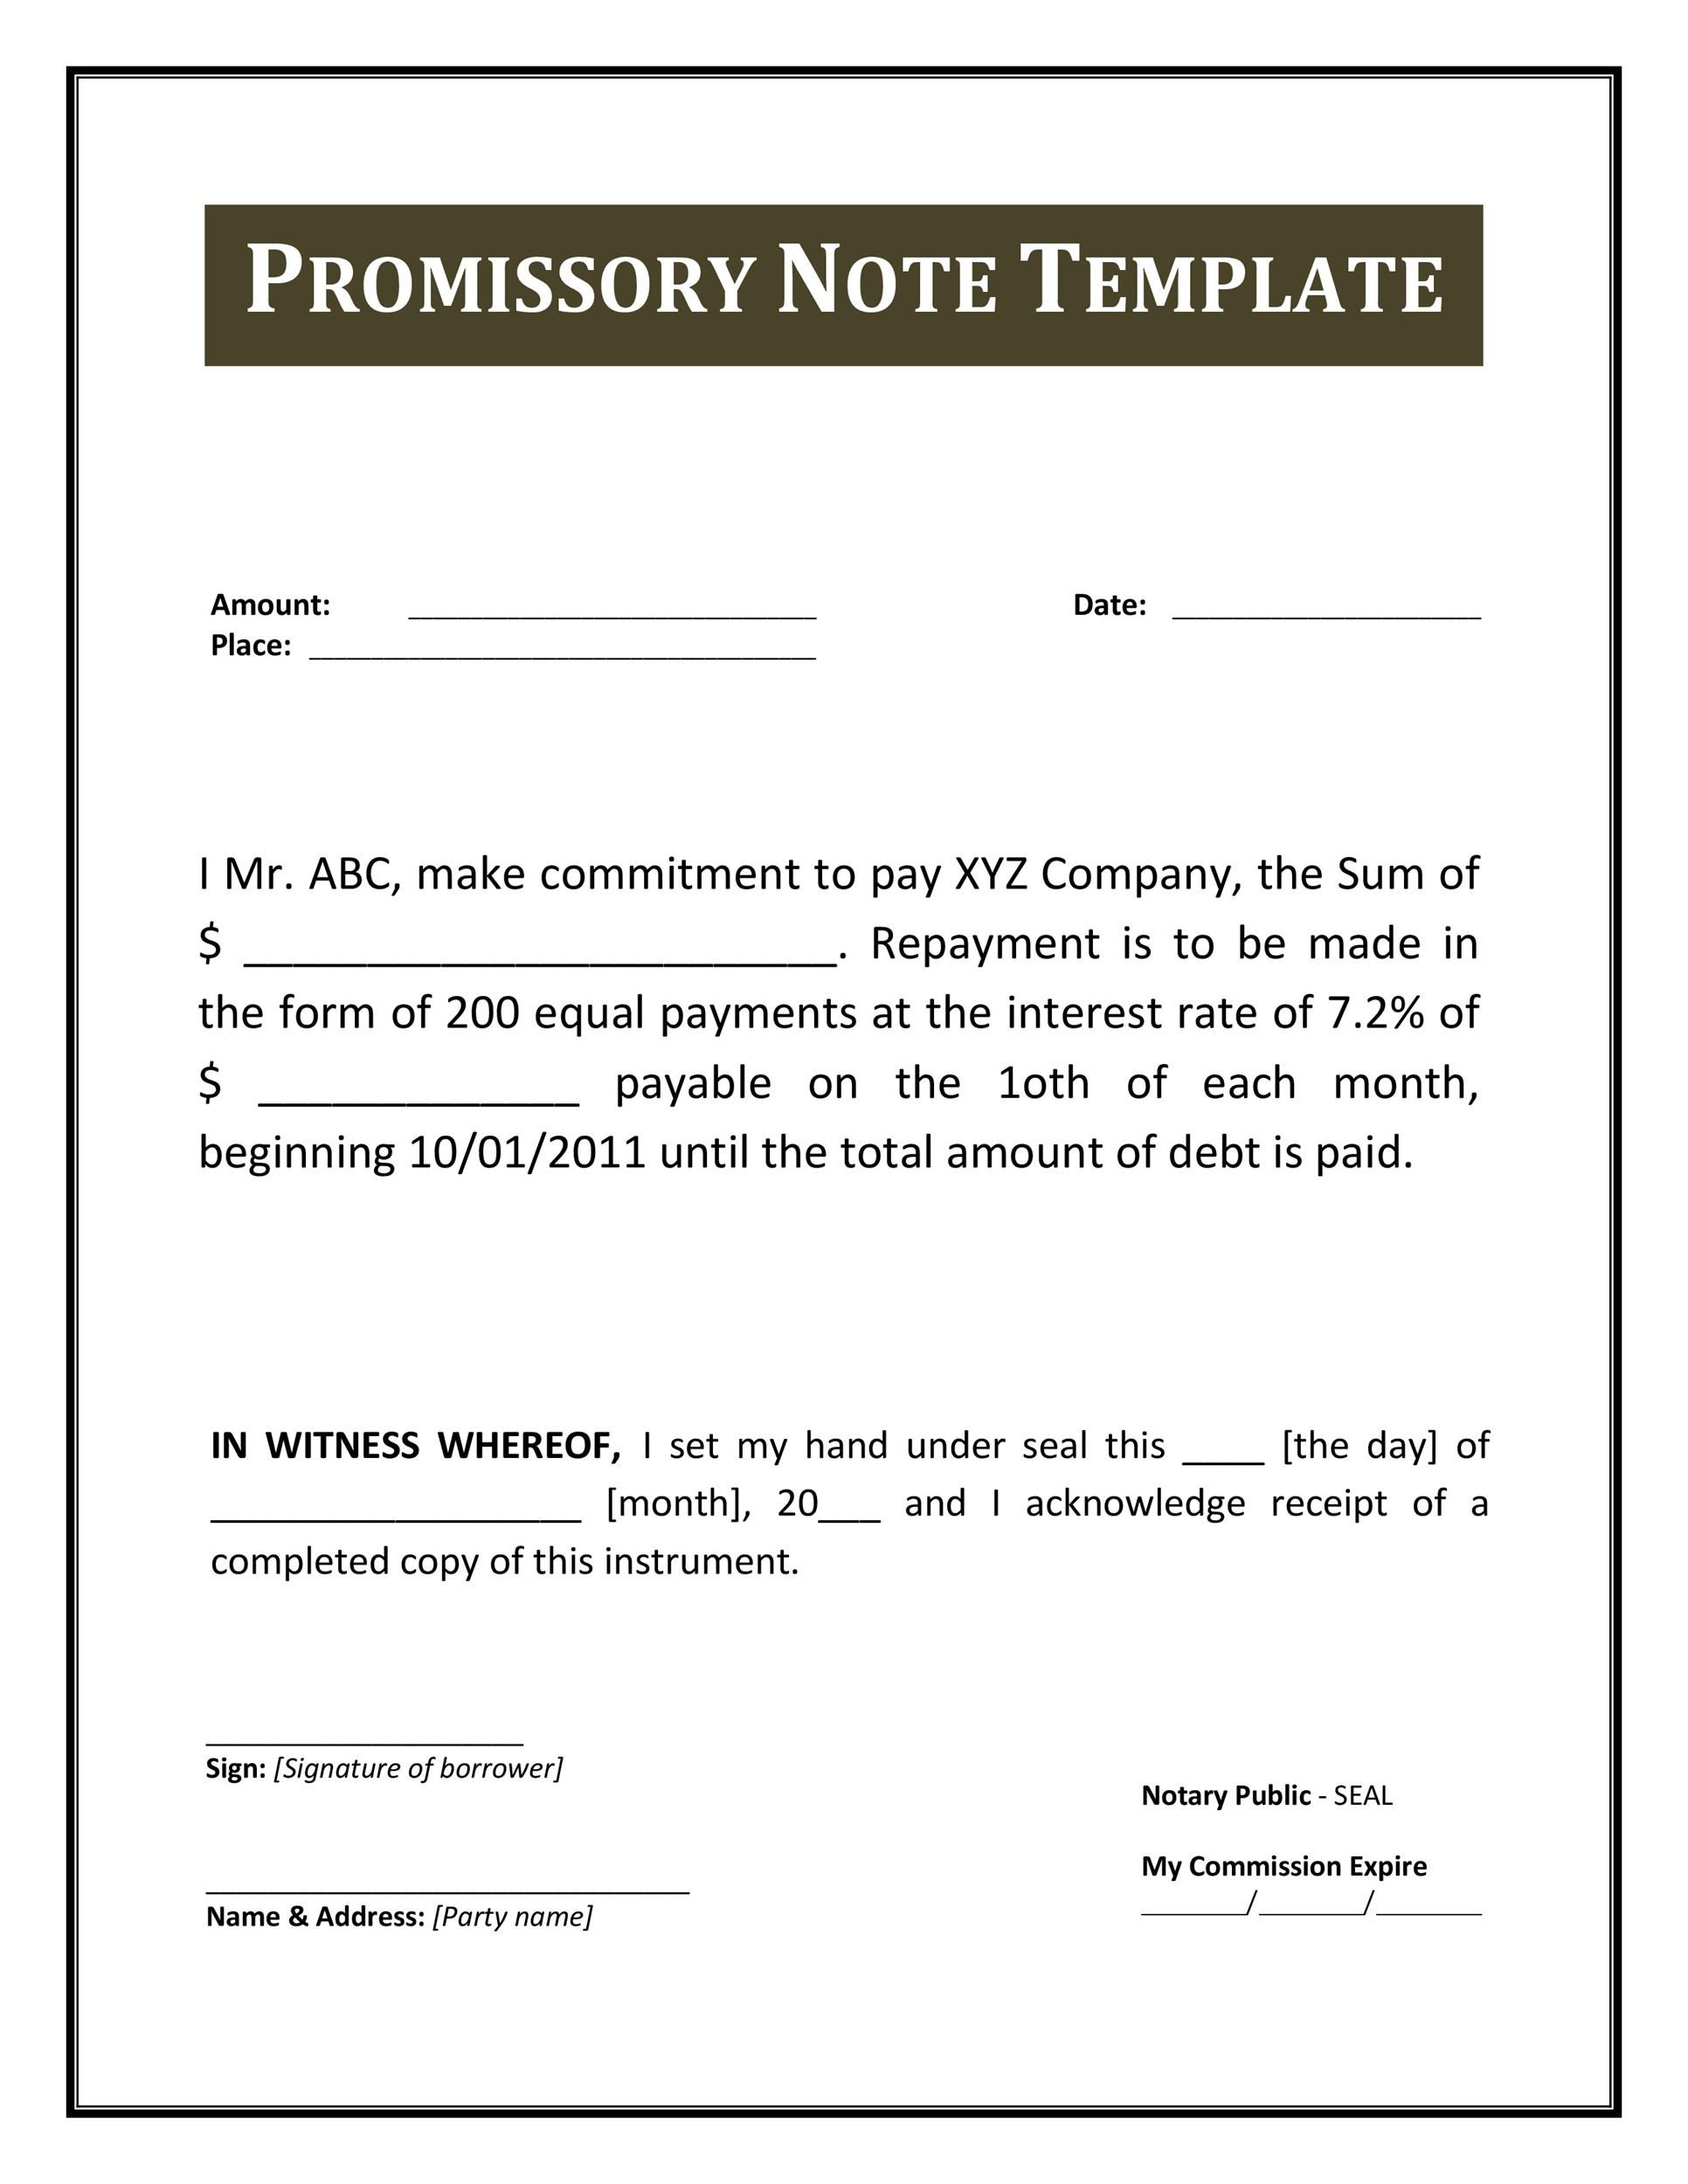 Promise To Pay Agreement Template Awesome Professional Template Design